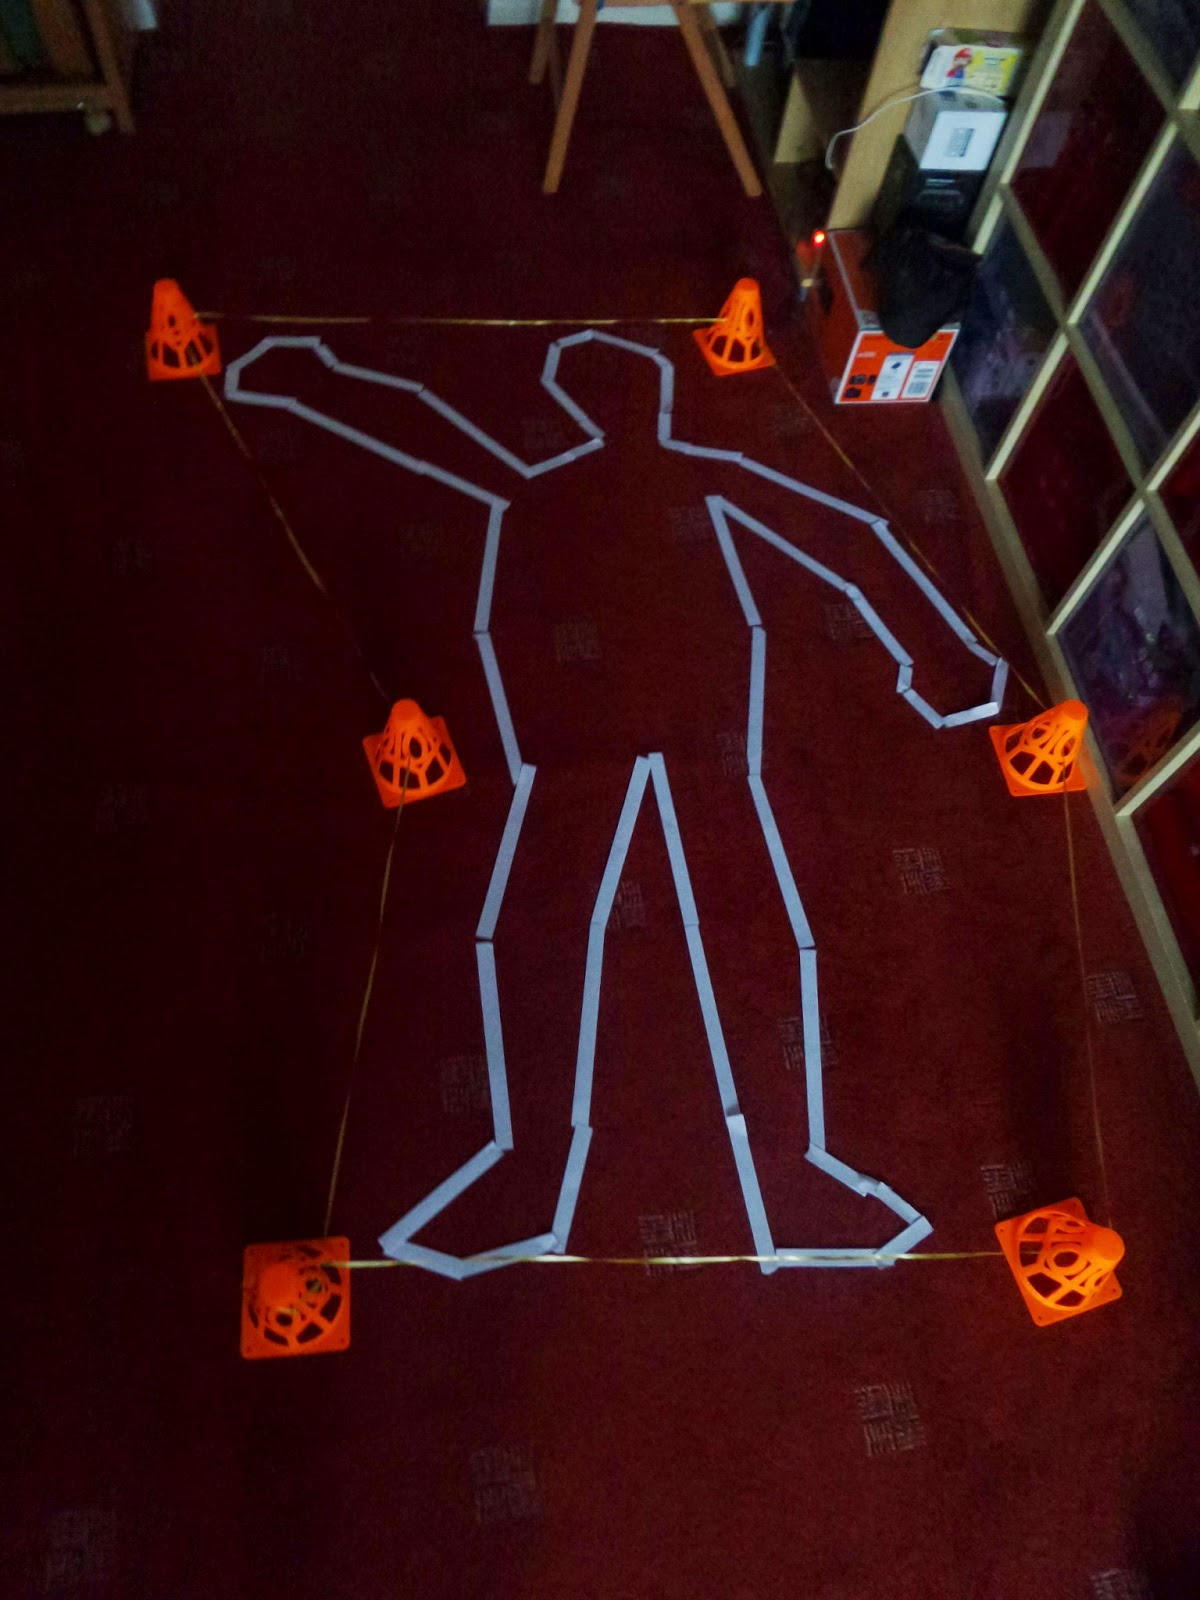 Either the outline of a Dead Body or someone doing Saturday Night Fever